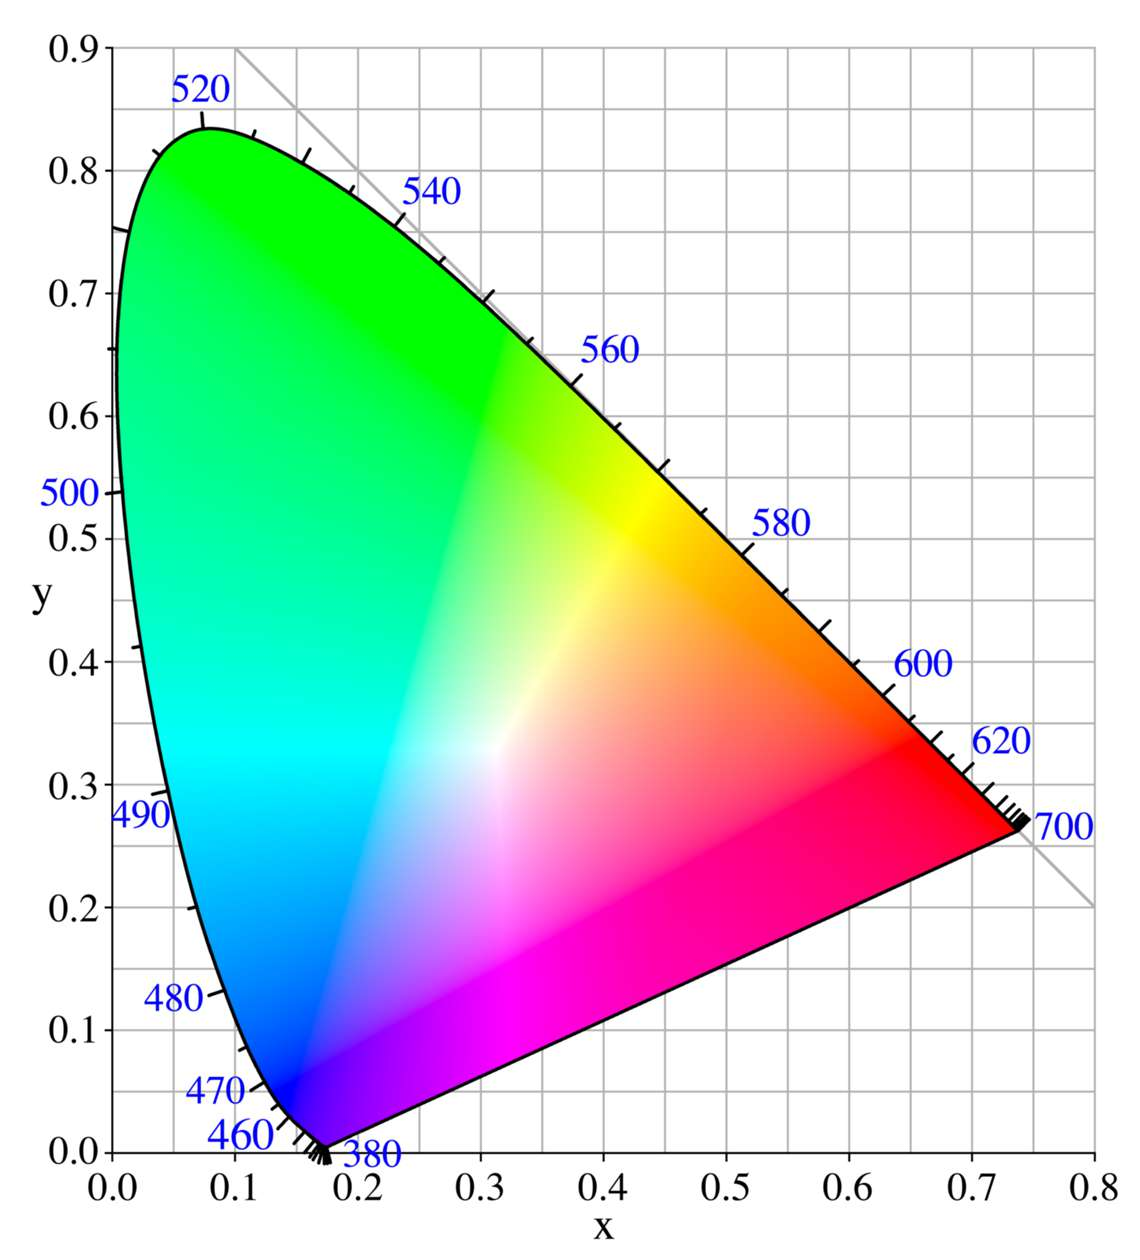 CIE-xy chromaticity diagram